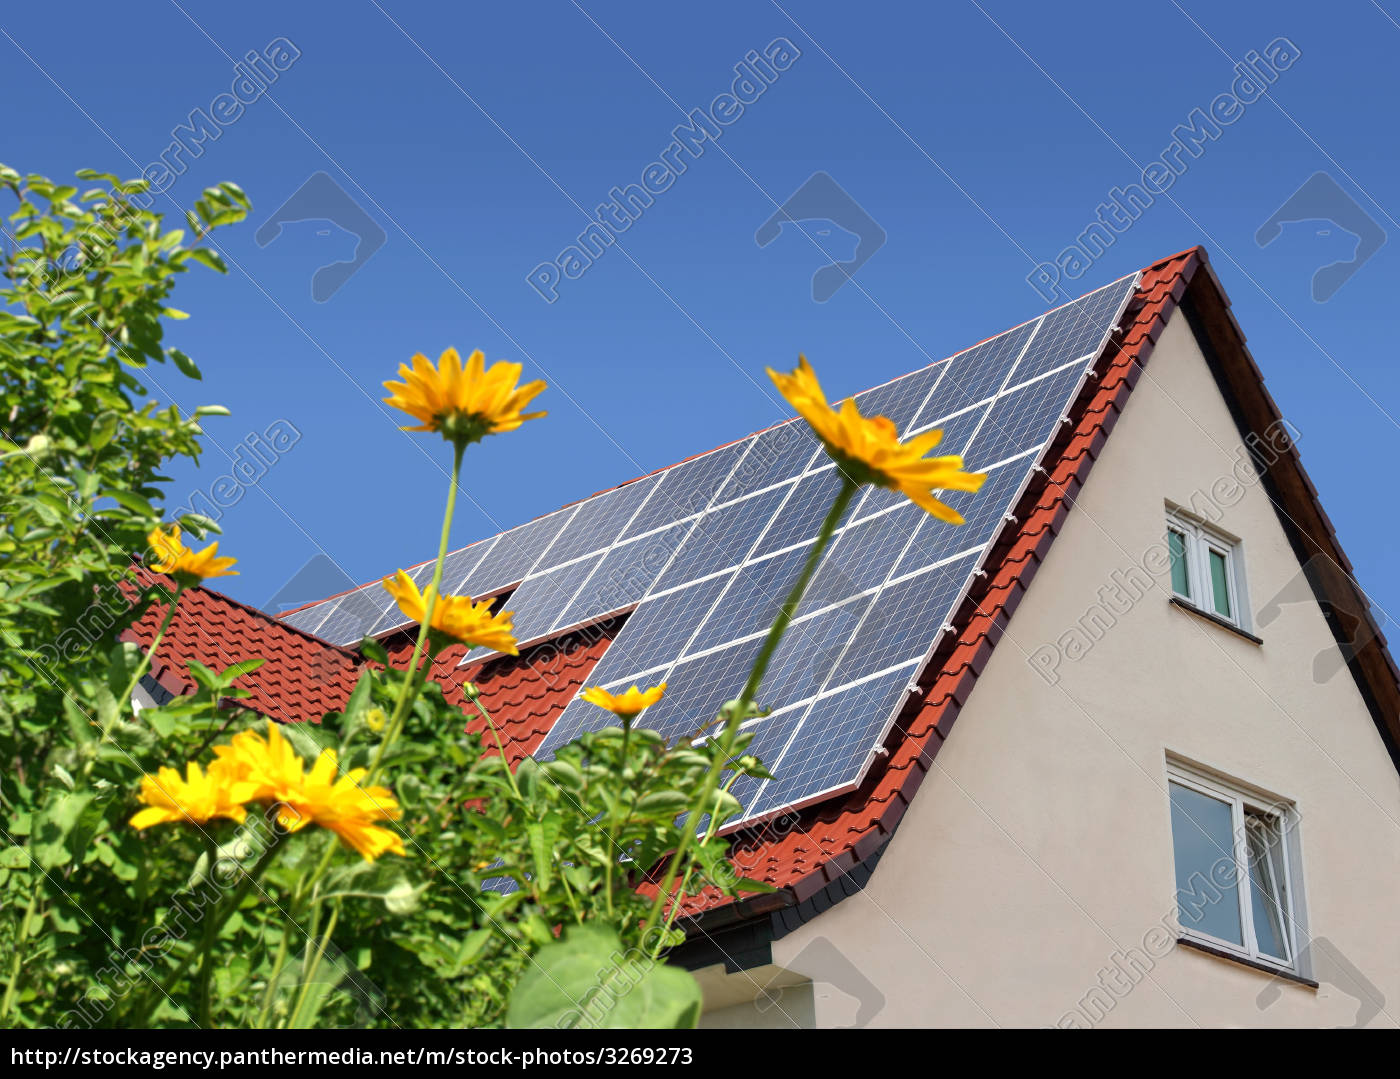 solar, panels, on, roof, behind, flowers - 3269273